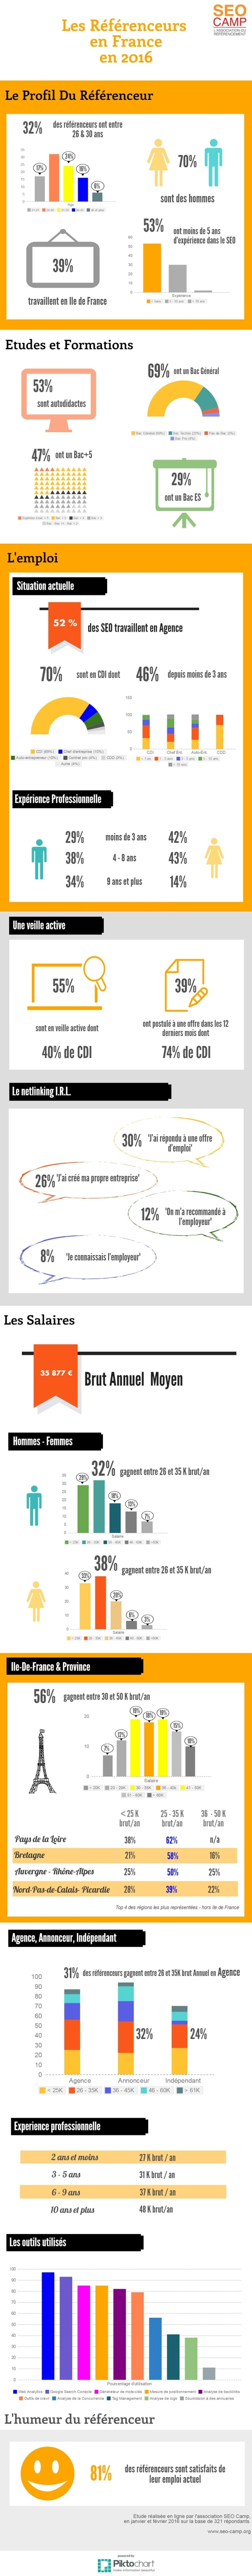 infographie-referenceur-seo-2016-france